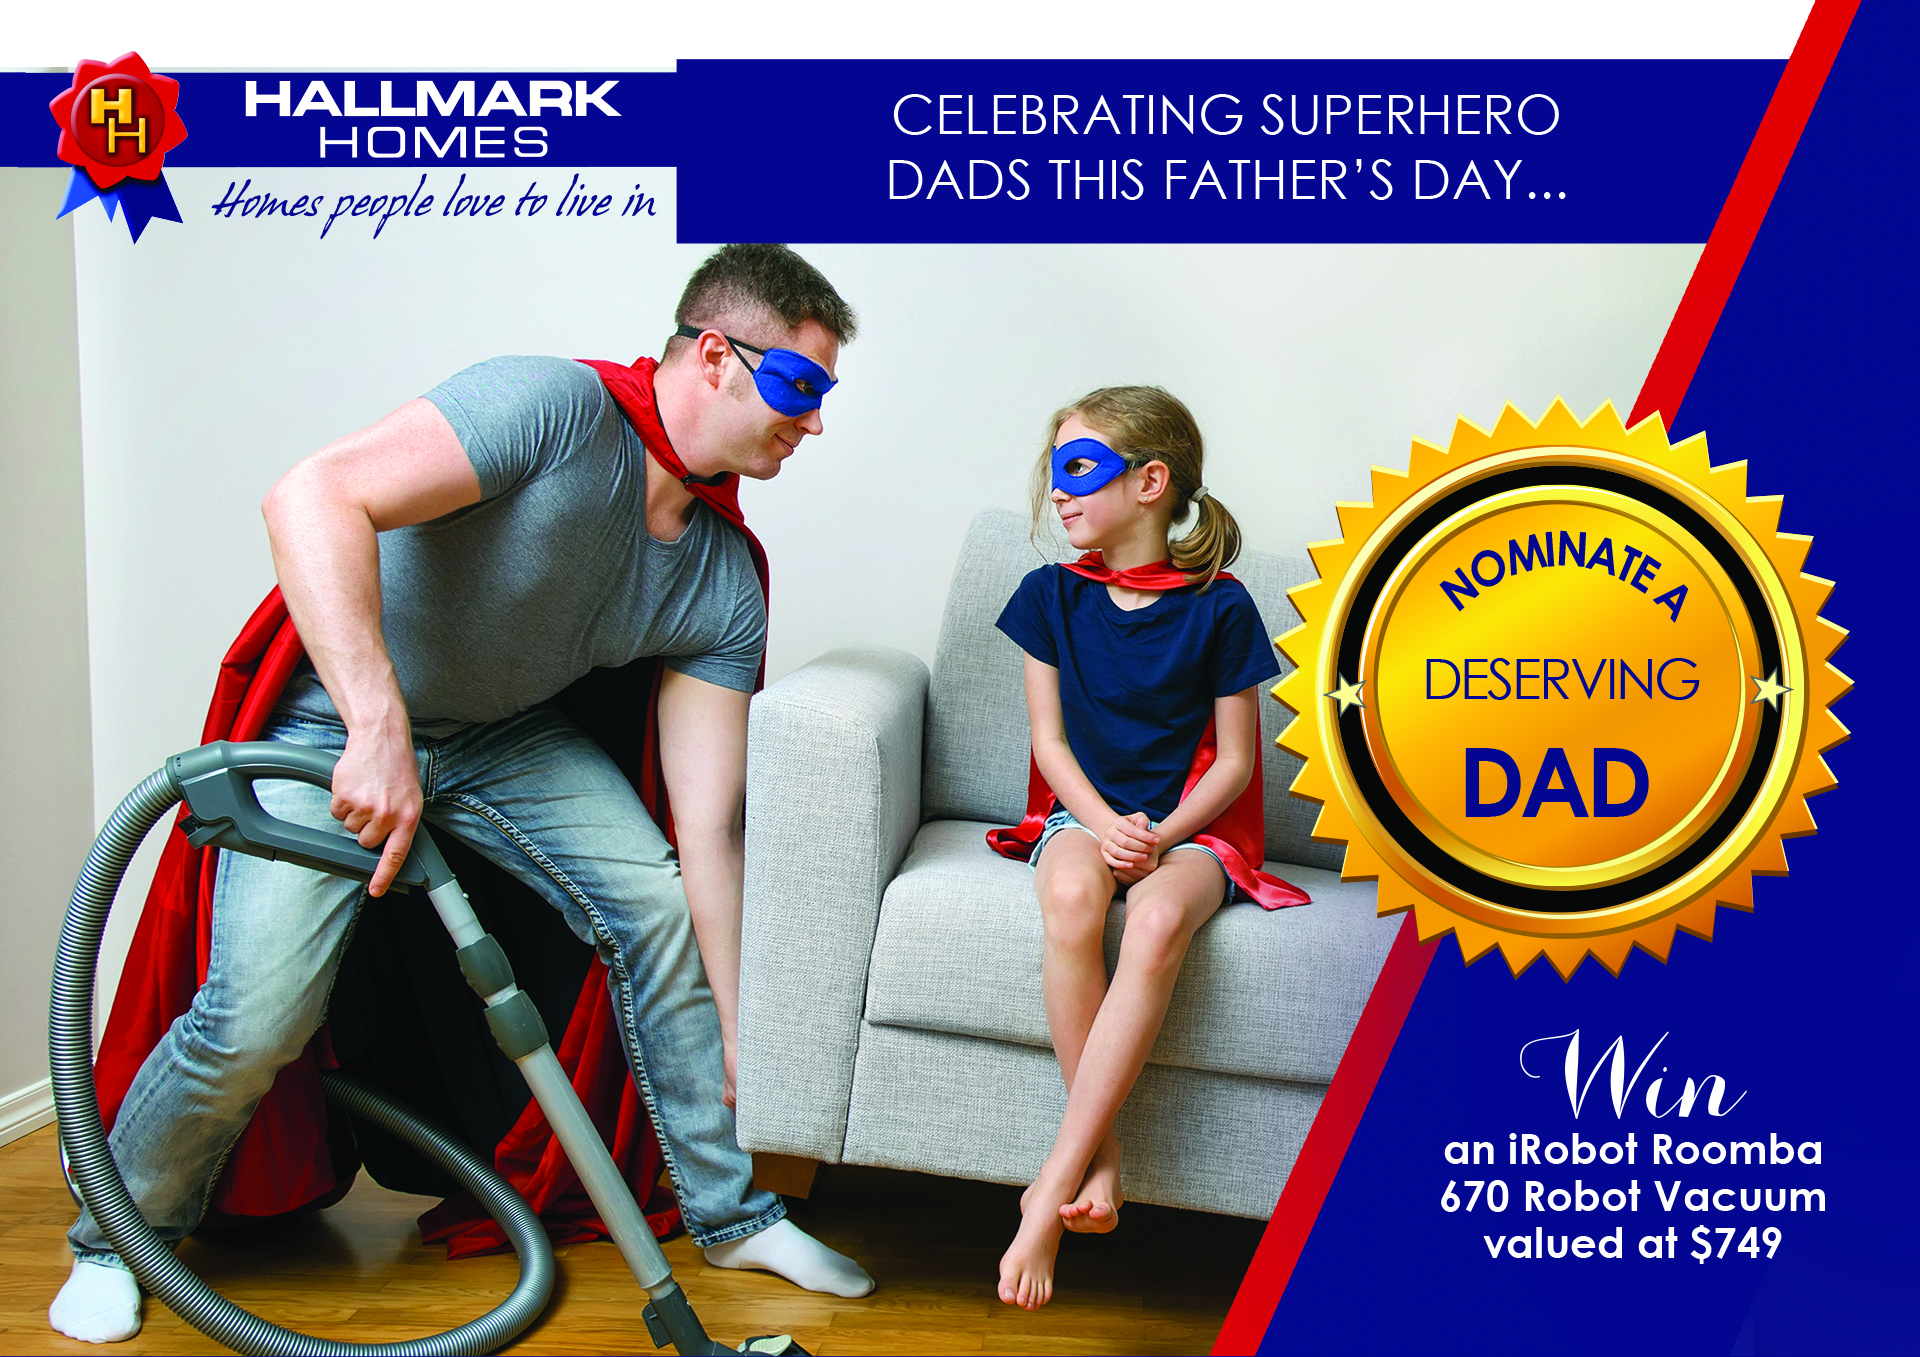 fathers day header - hallmark-Father's day